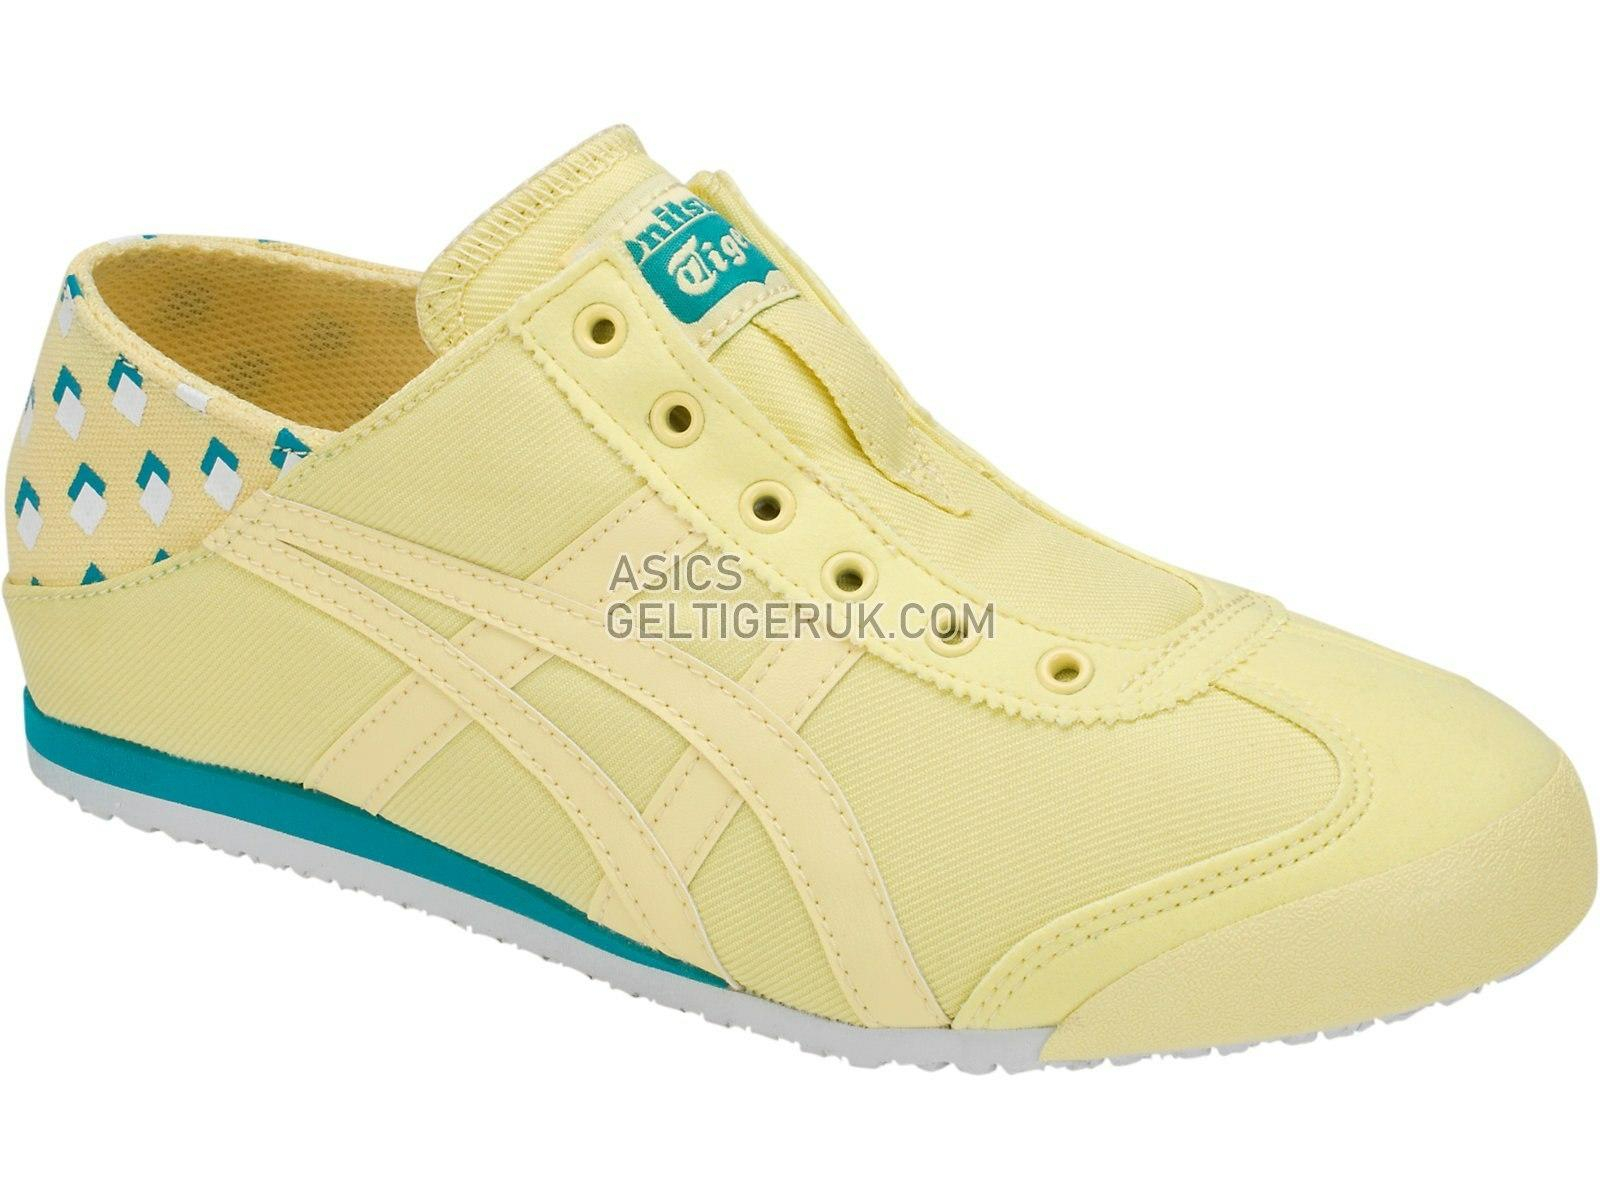 new styles 802fc 4a7d0 Onitsuka Tiger Philippines: Onitsuka Tiger price list ...